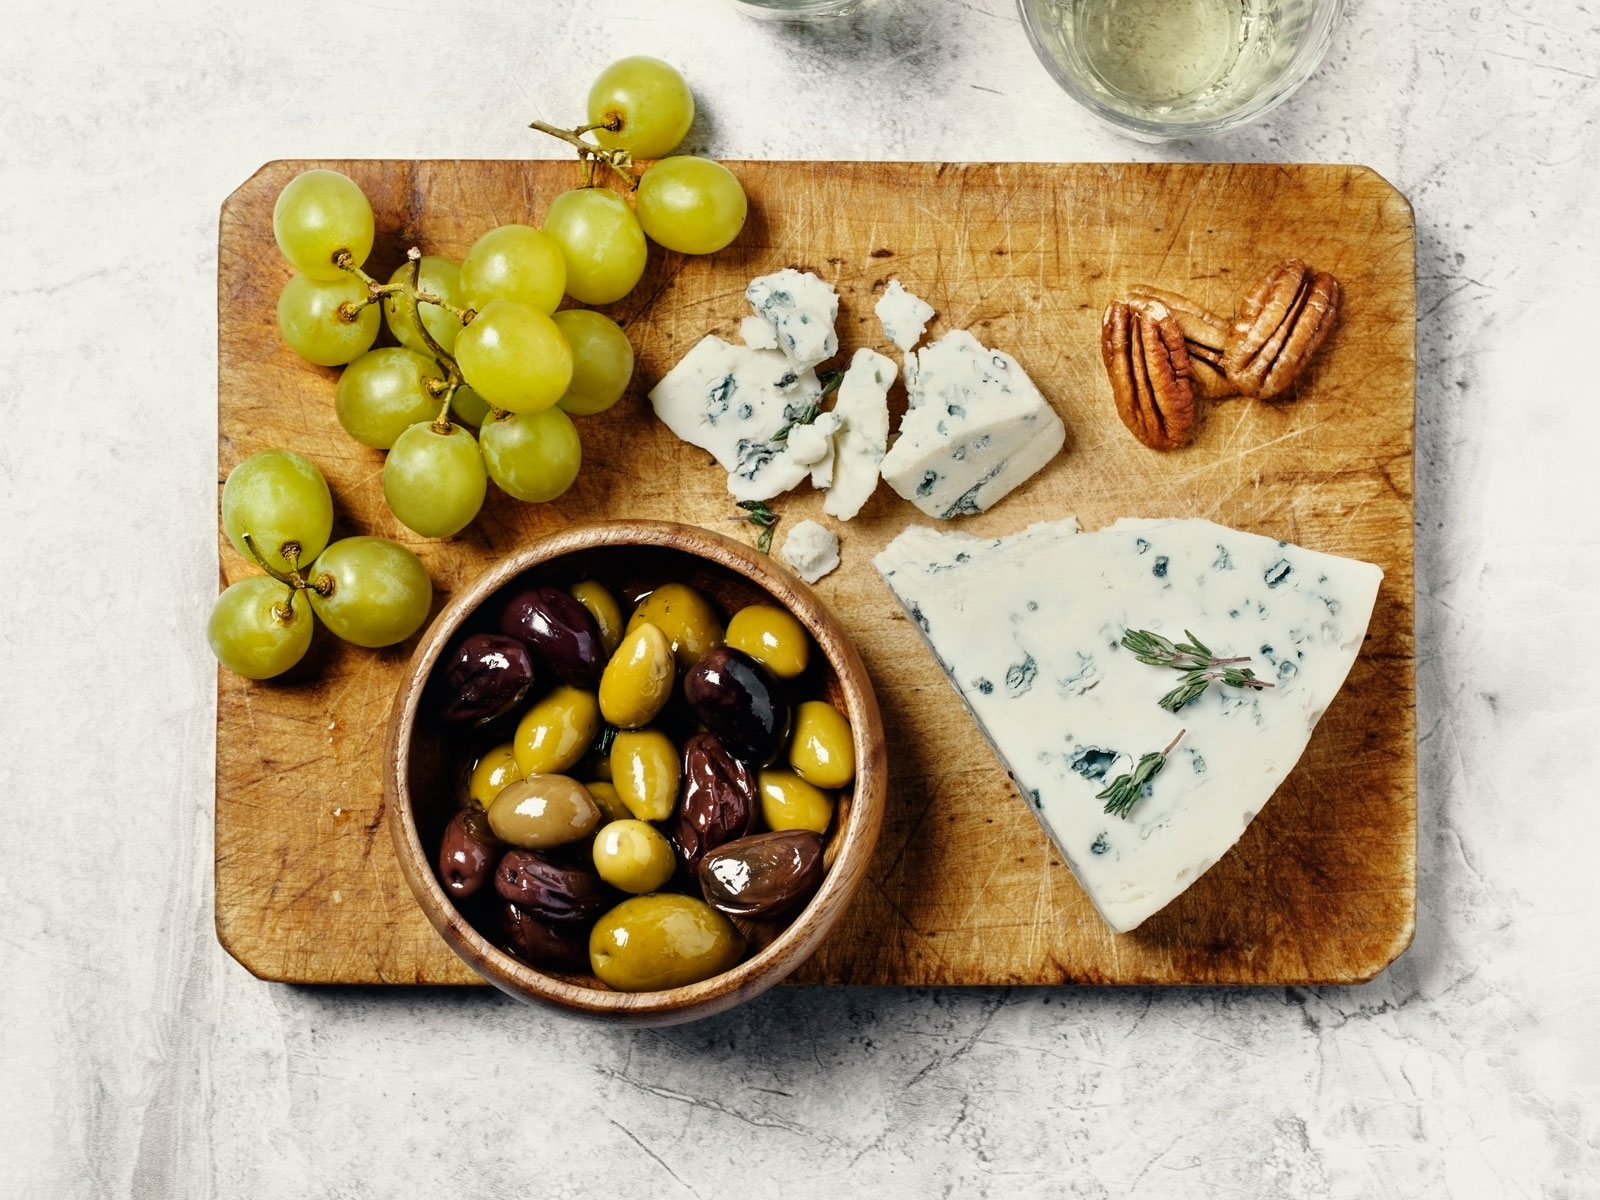 How to Eat Pitted Olives